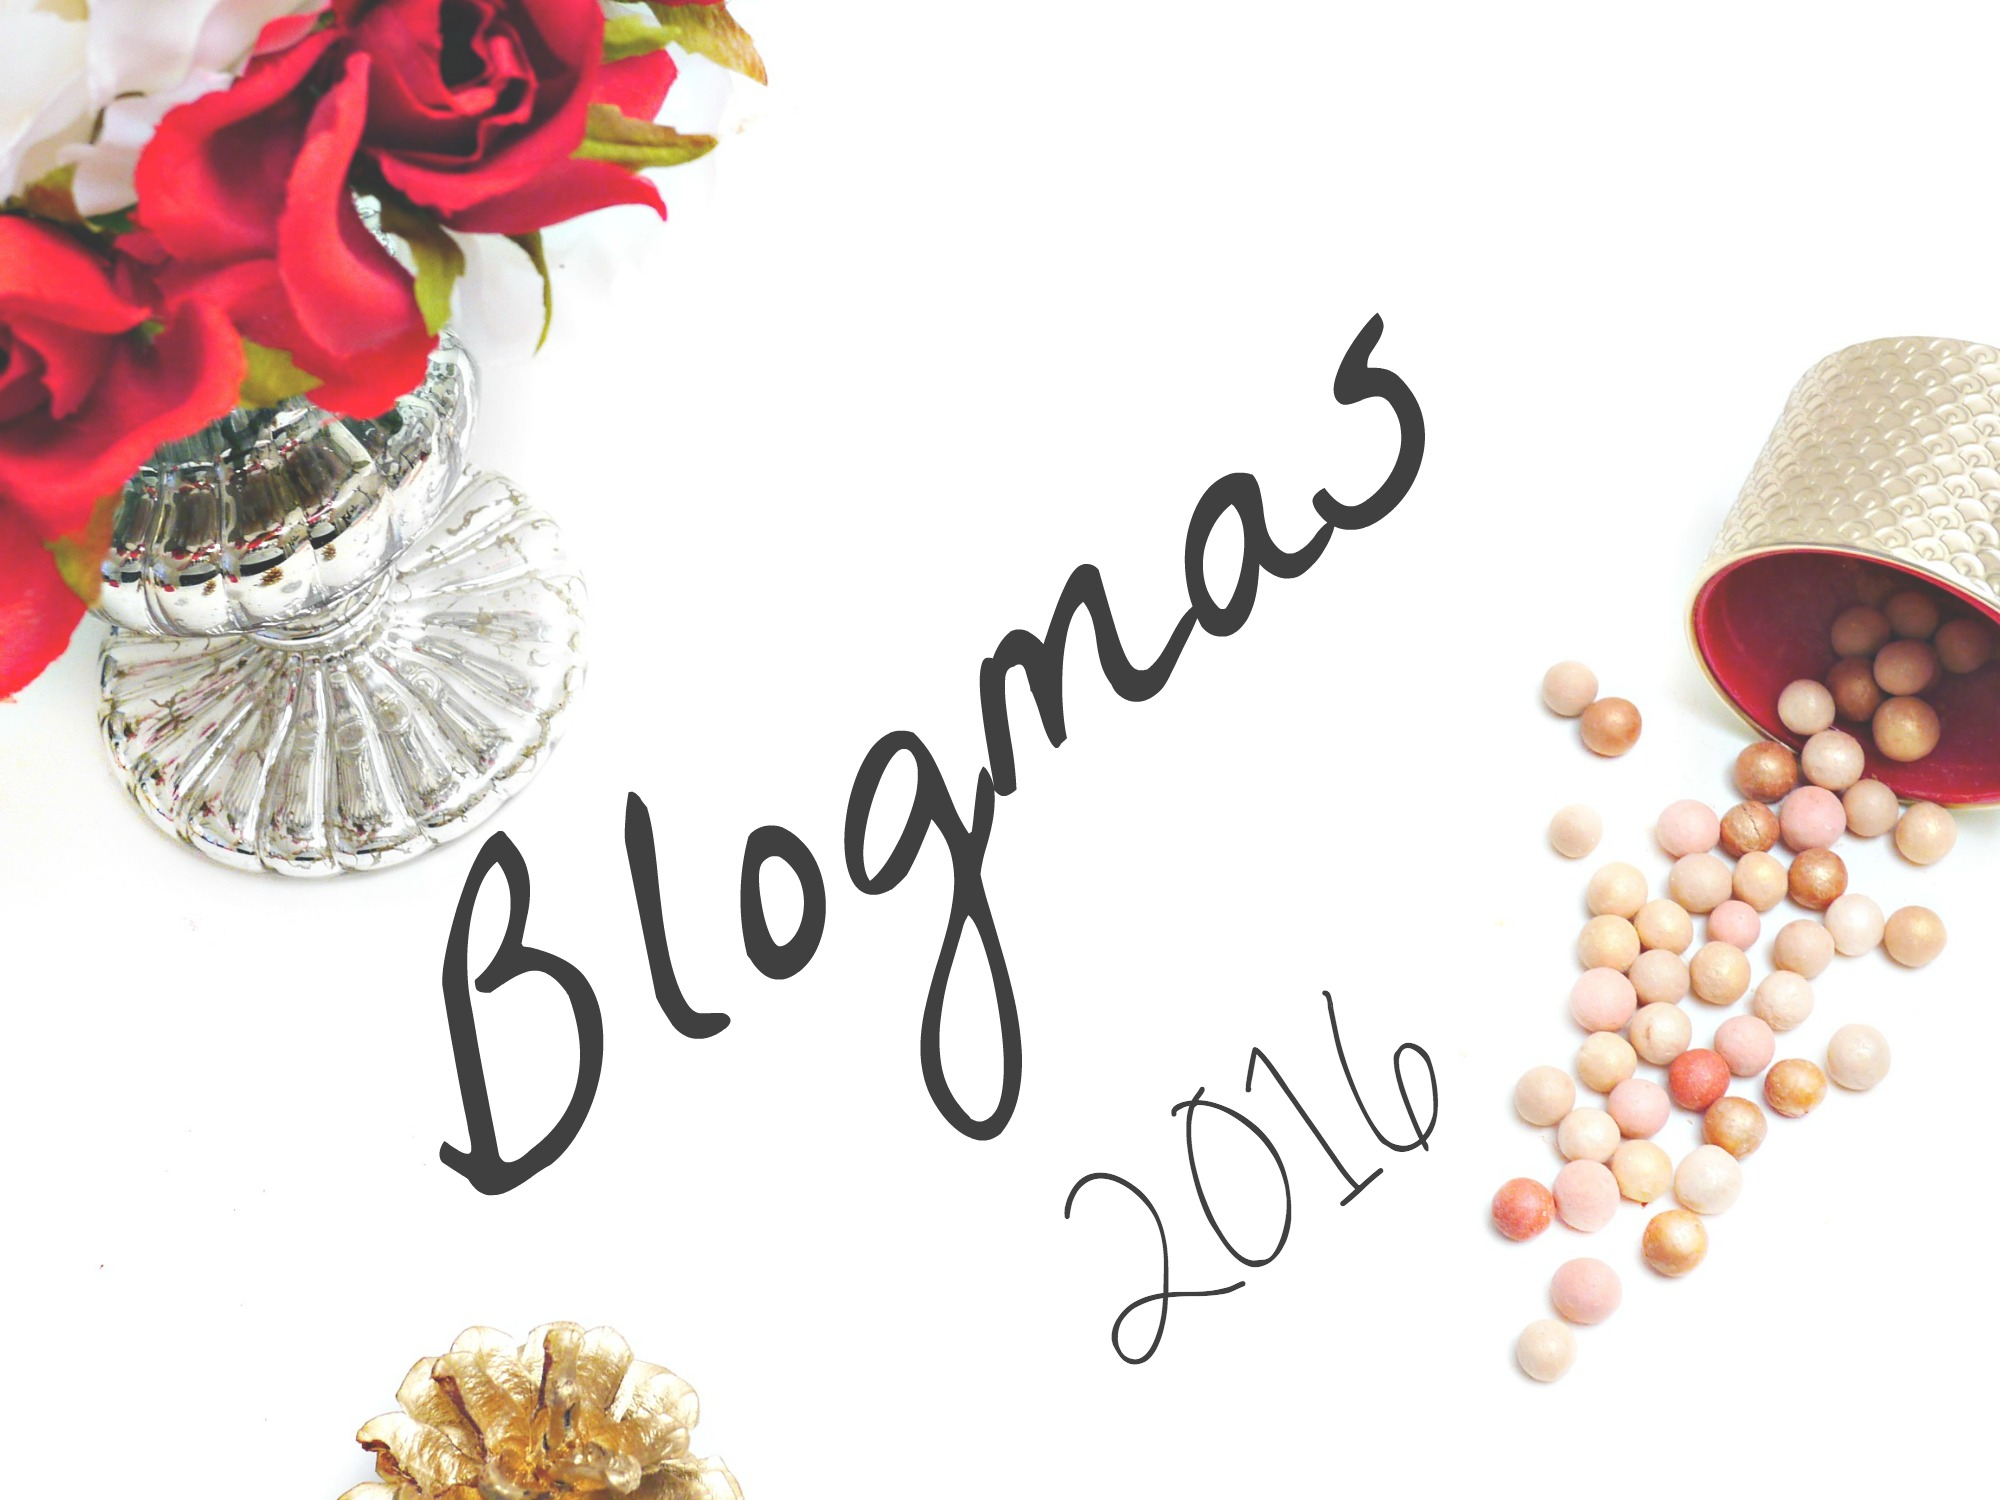 blogmas-intro-pic